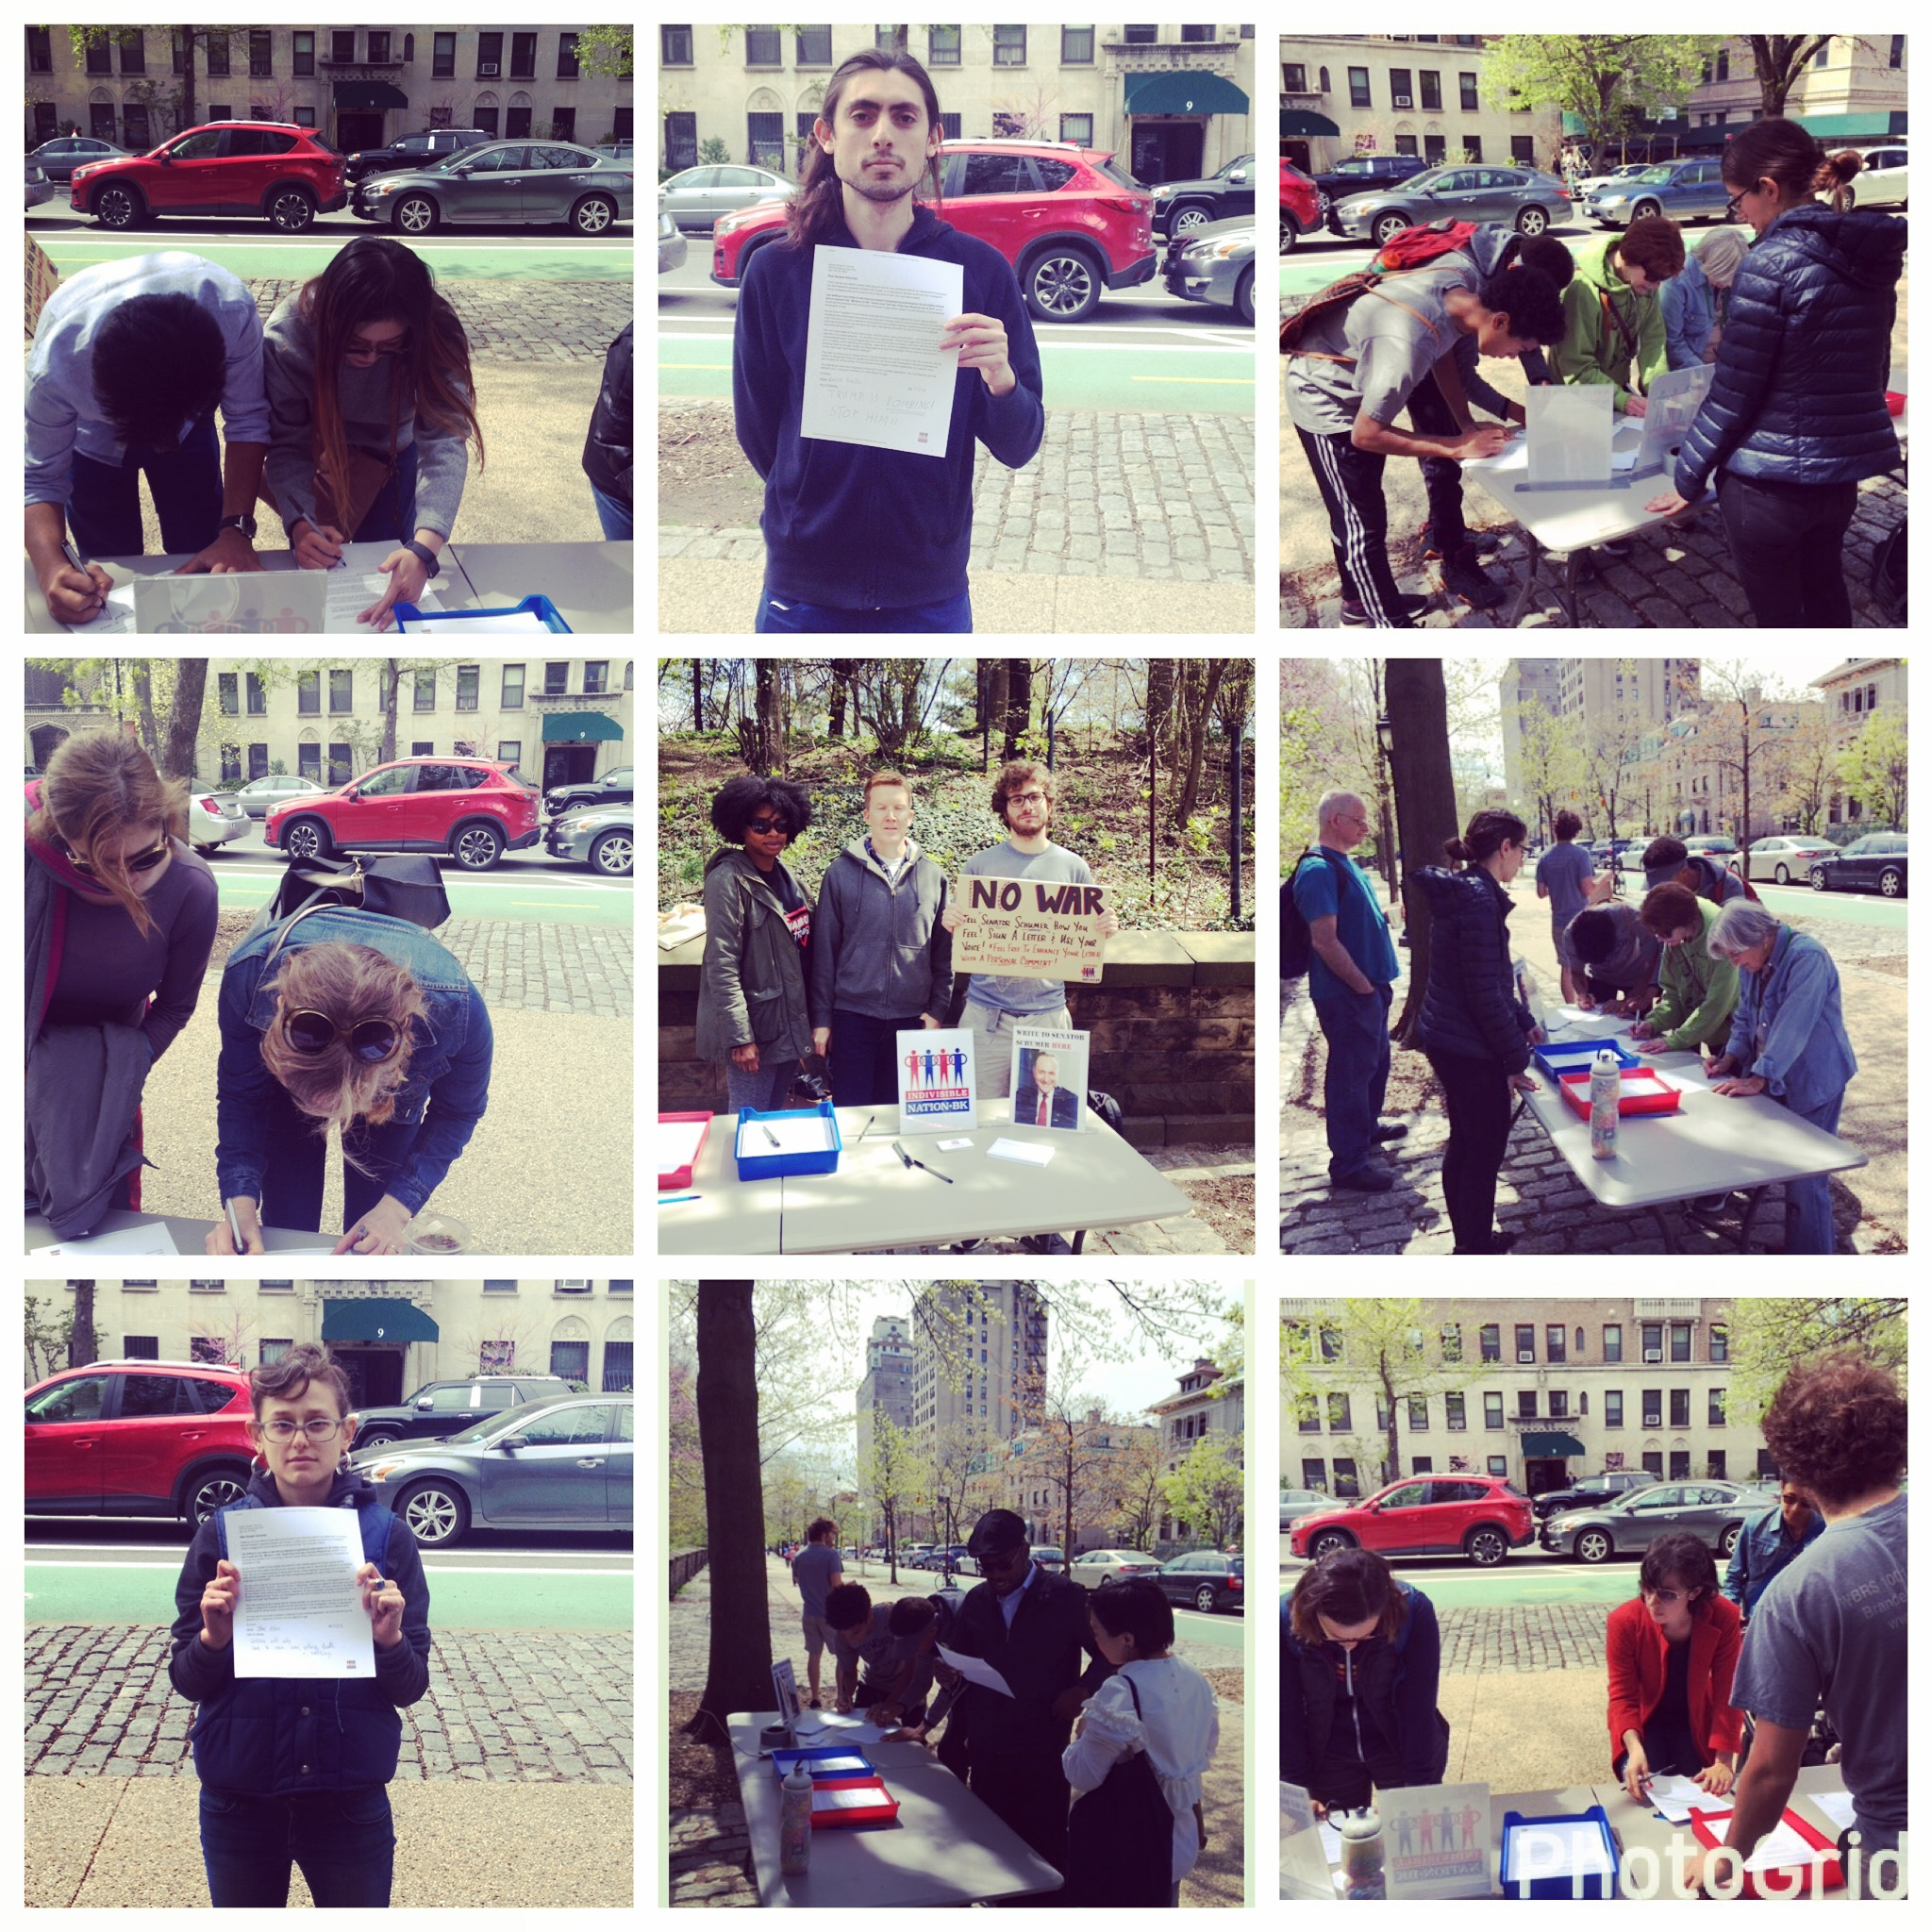 Tabling in front of Senator Schumer's Brooklyn apartment building